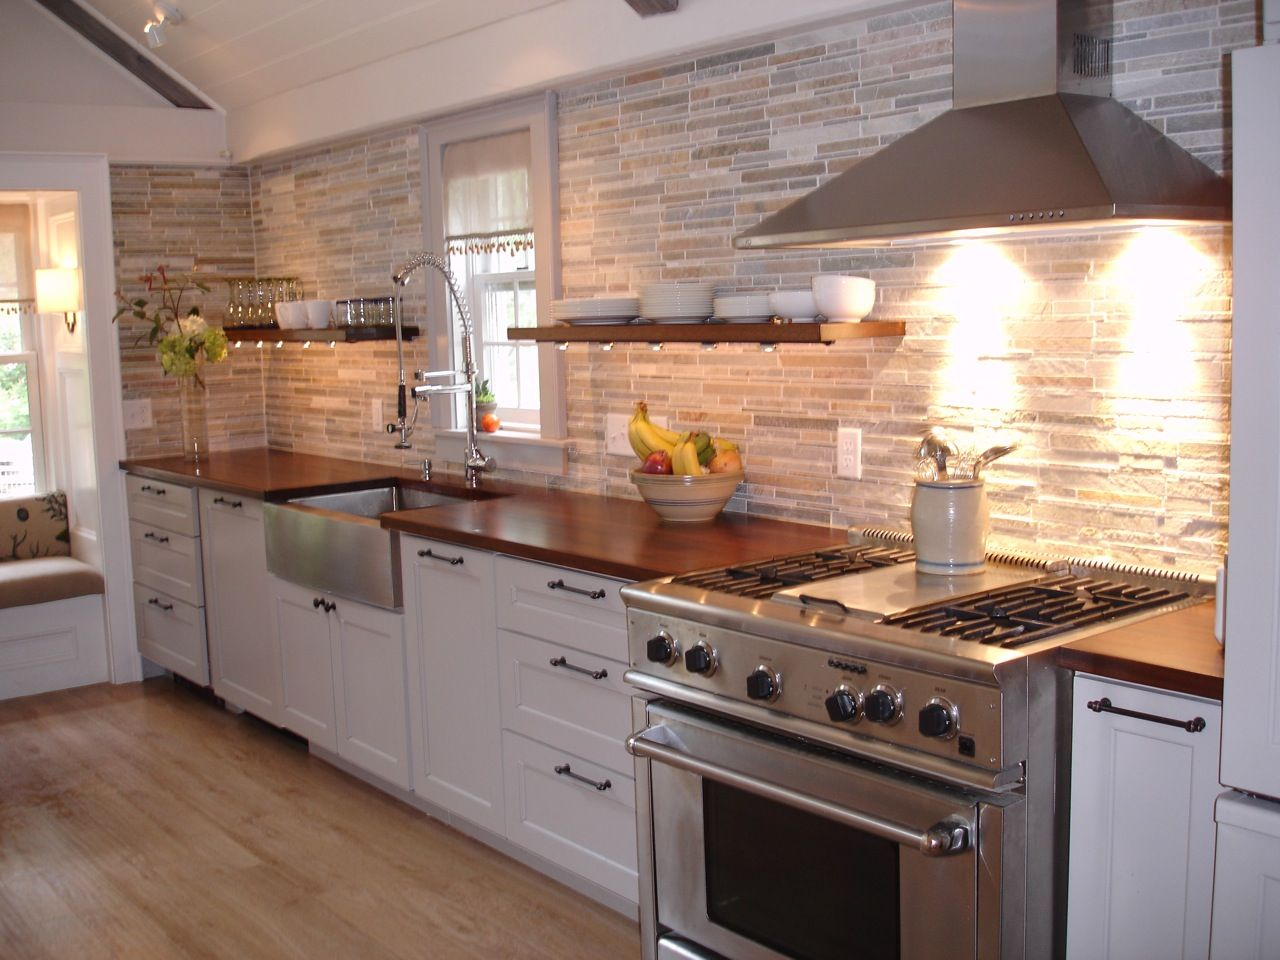 how to choose a wood countertop for your kitchen wood kitchen countertops Mahogany wood countertop provides a warm contrast to stainless steel and white shaker kitchen cabinets